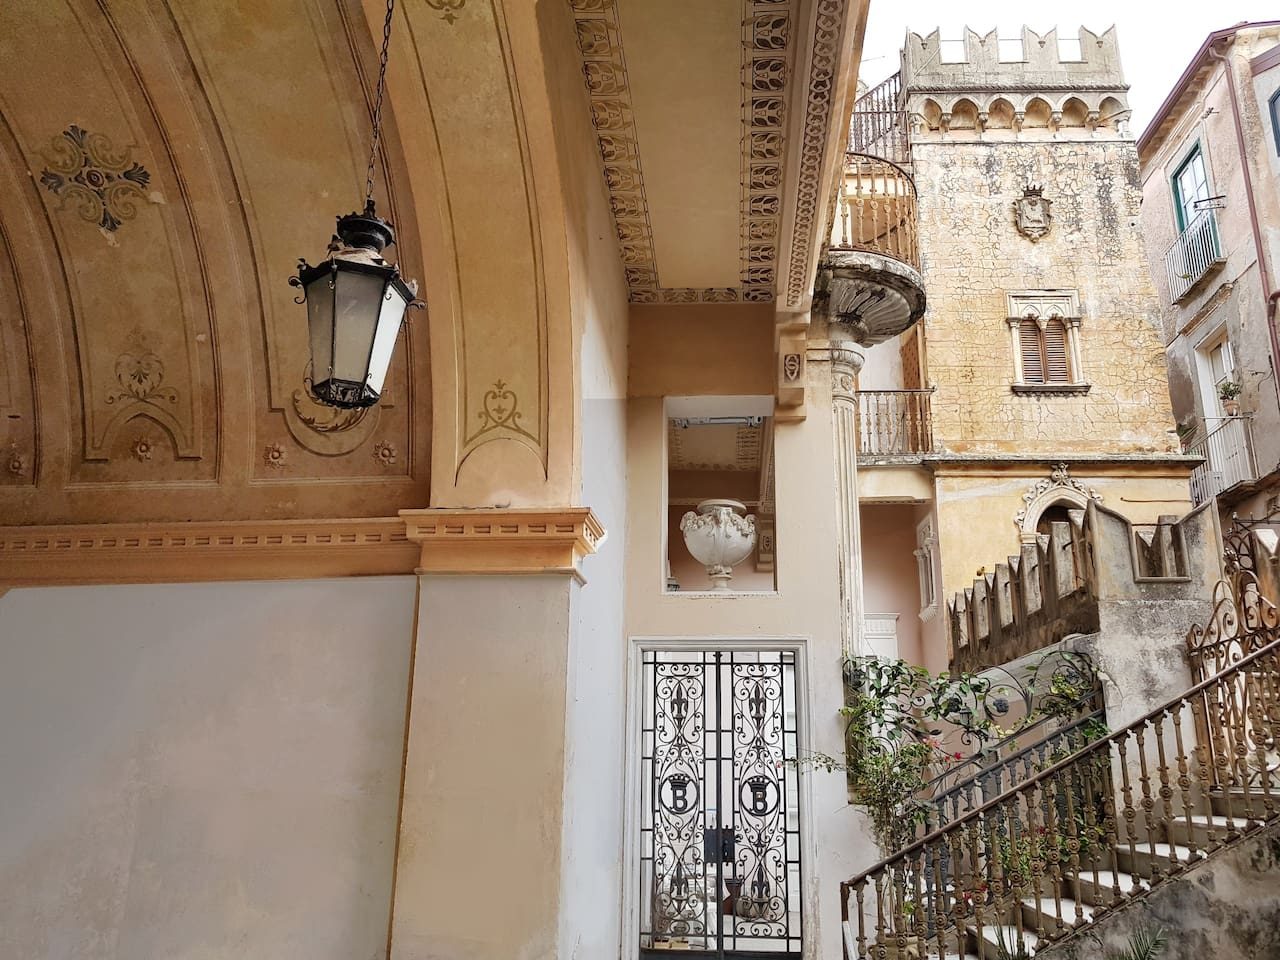 View of the palazzo from the courtyard